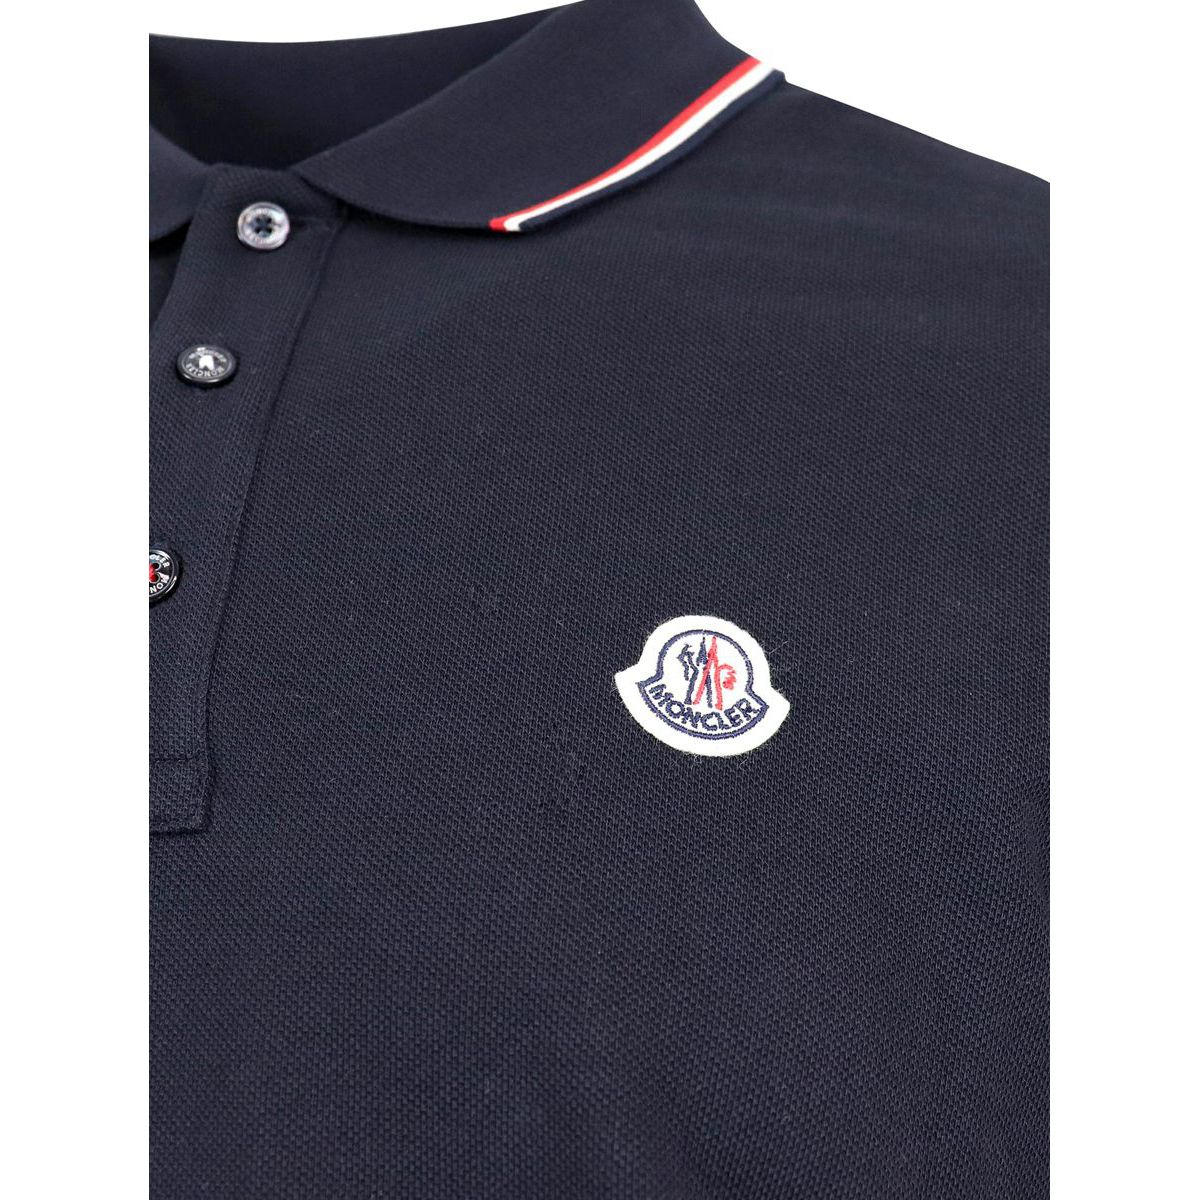 3 button cotton polo shirt with trim and logo Navy Moncler